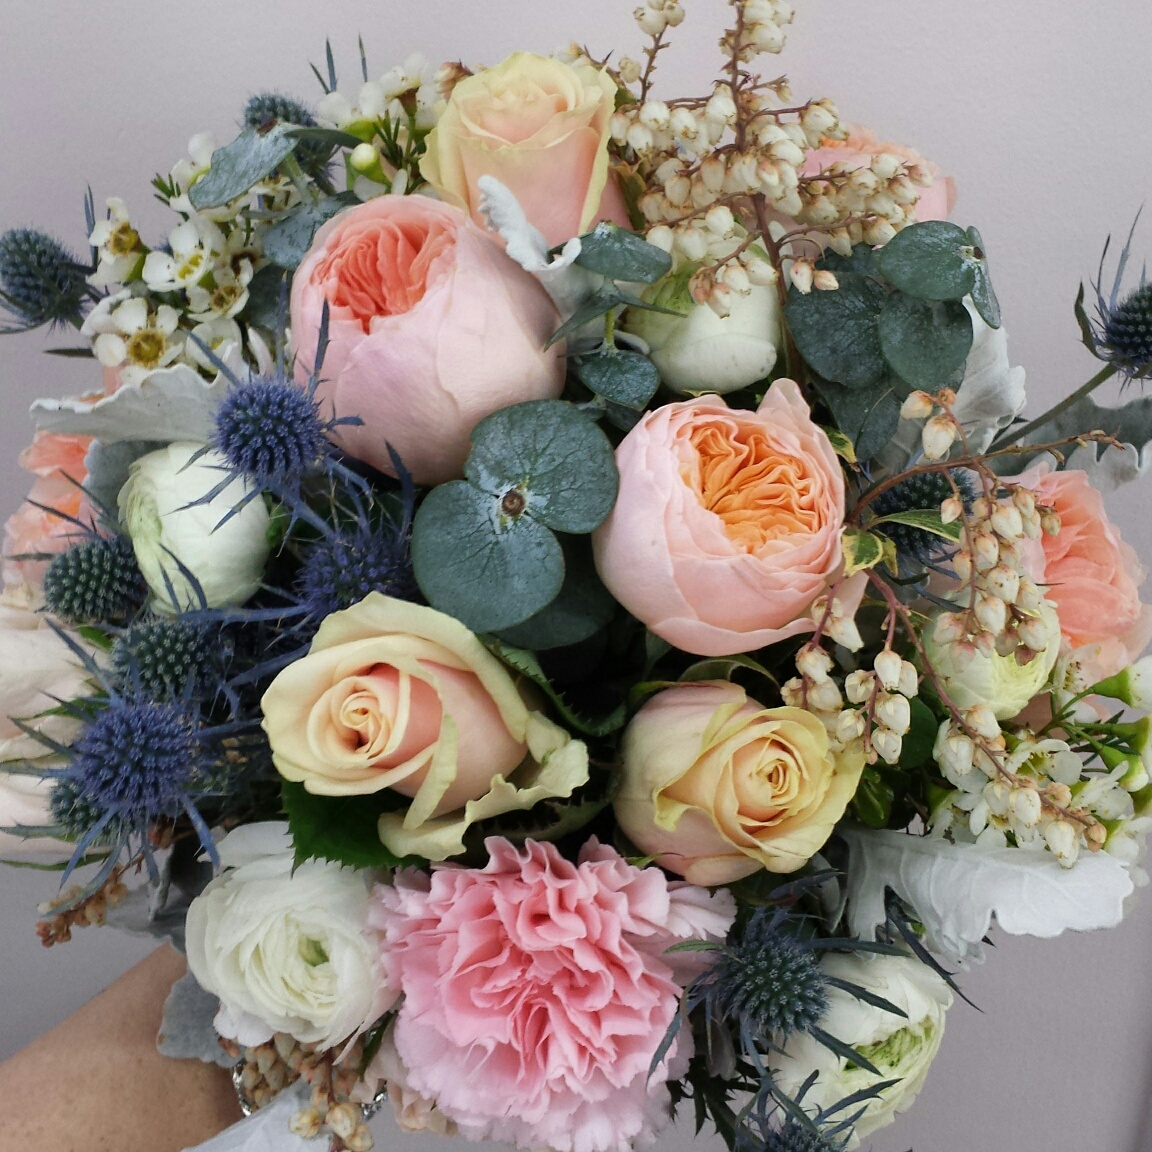 sea holly, garden roses, andromeda and carnation